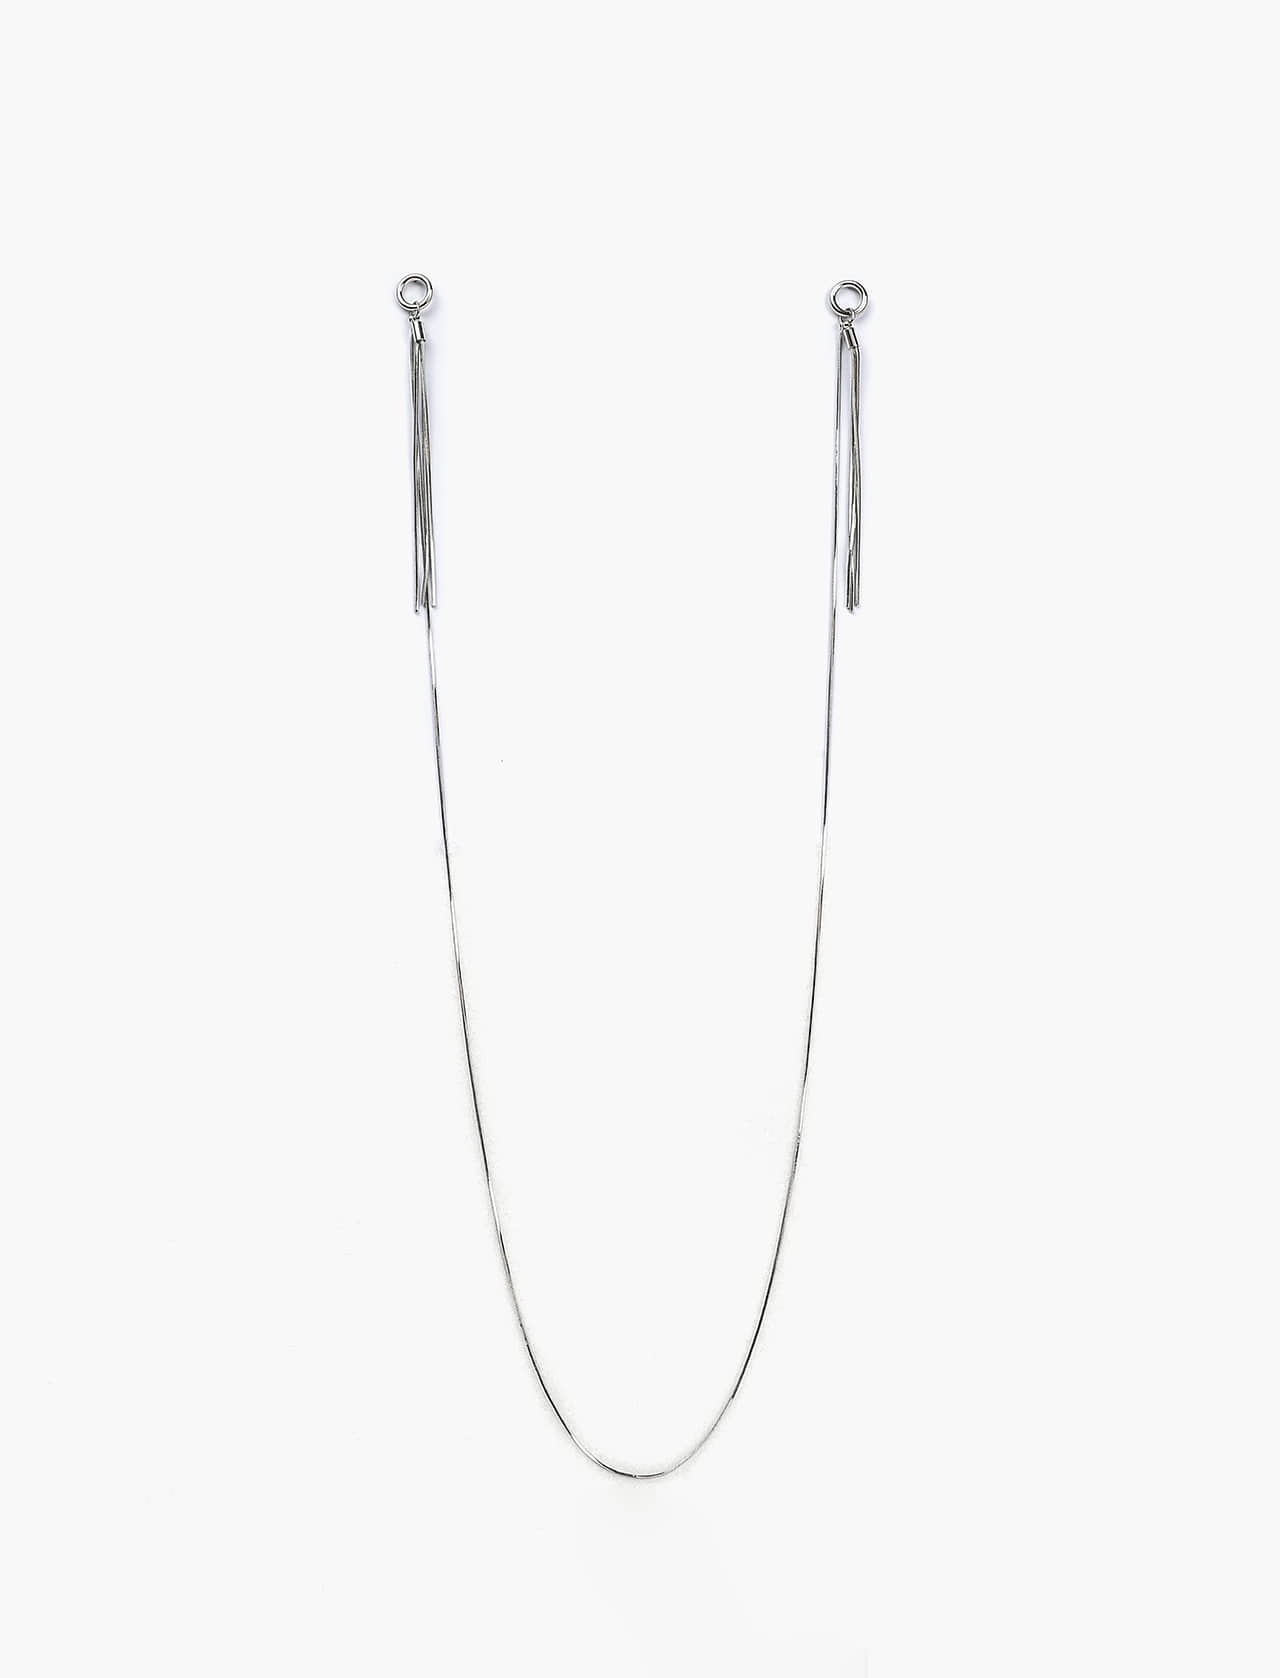 LINKED SIMPLE EARRING